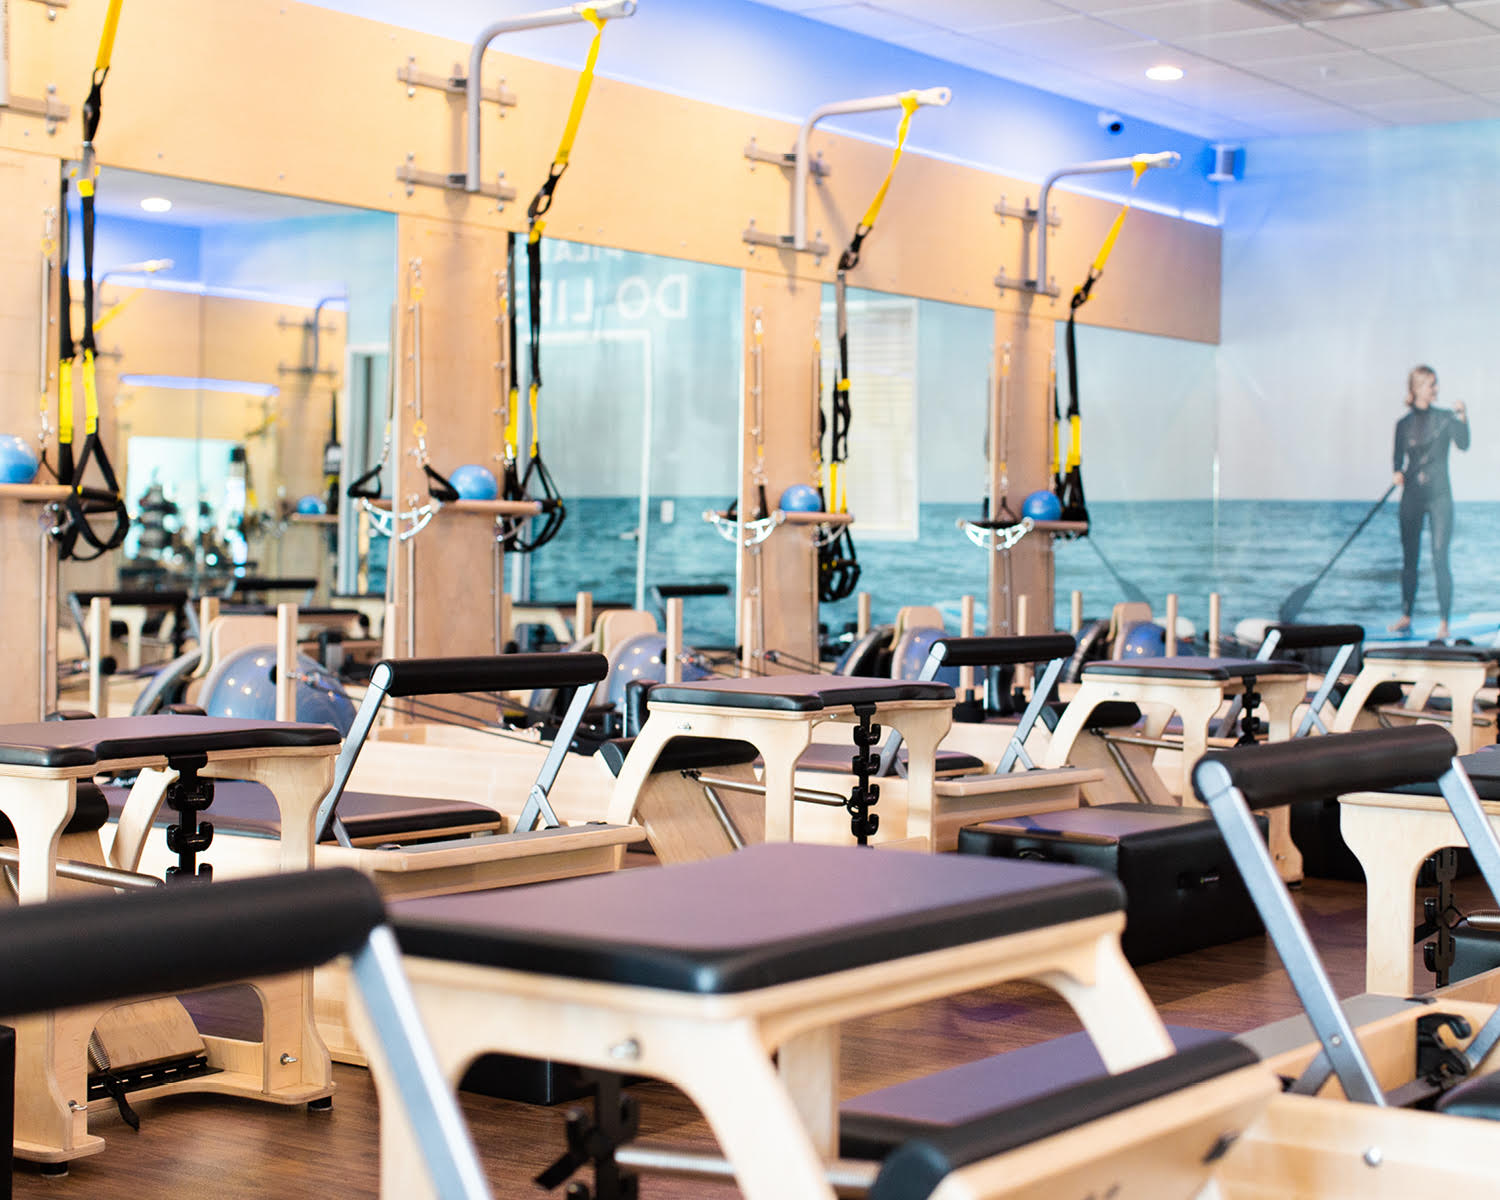 Club Pilates Kicks Off New Year with Deal to Bring 50 New Studios to Spain